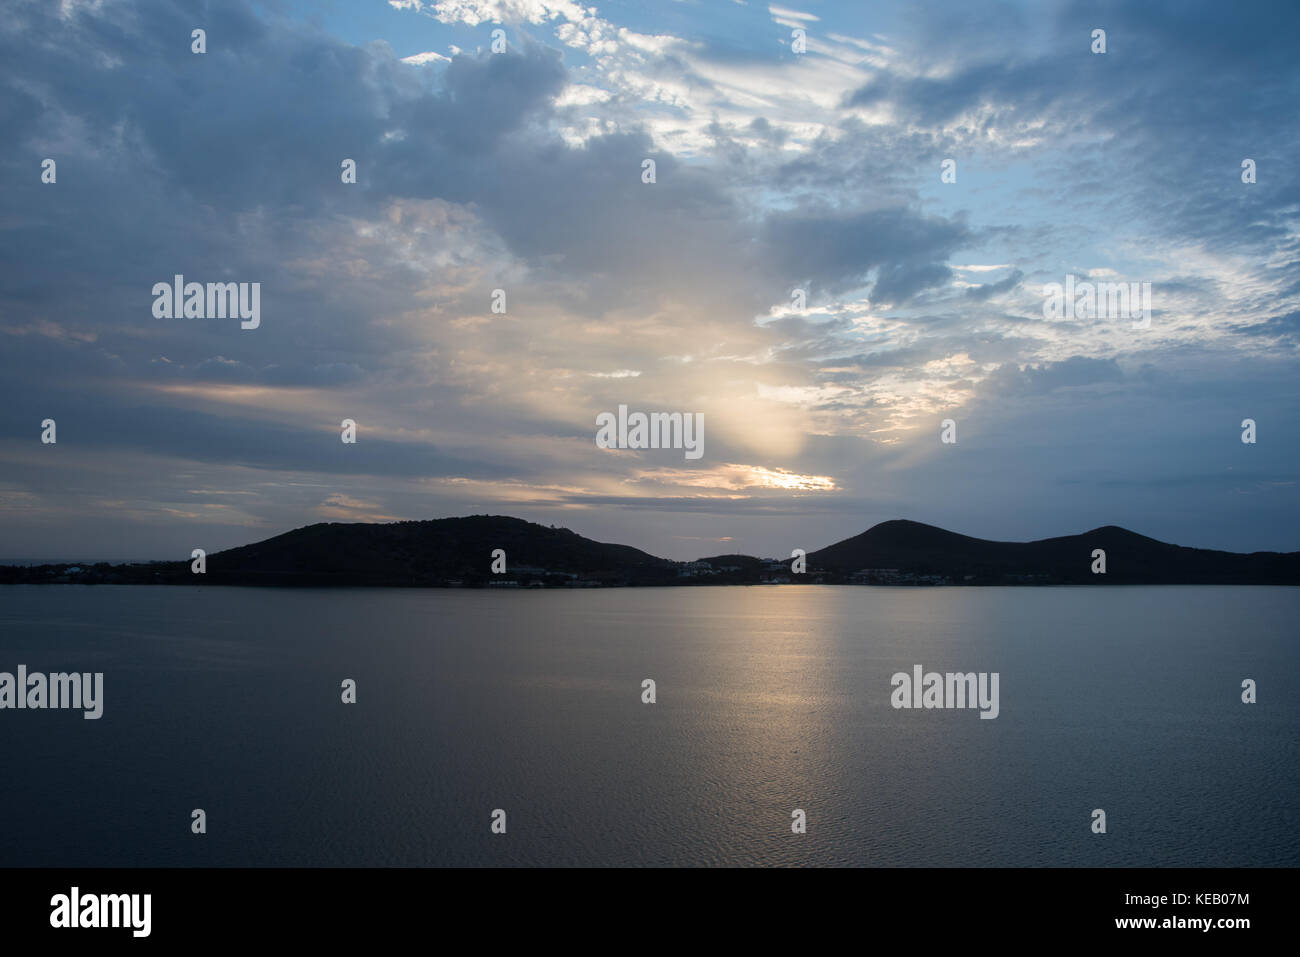 Noumea, New Caledonia landscape with the Pacific Ocean and sunset sky with clouds. - Stock Image